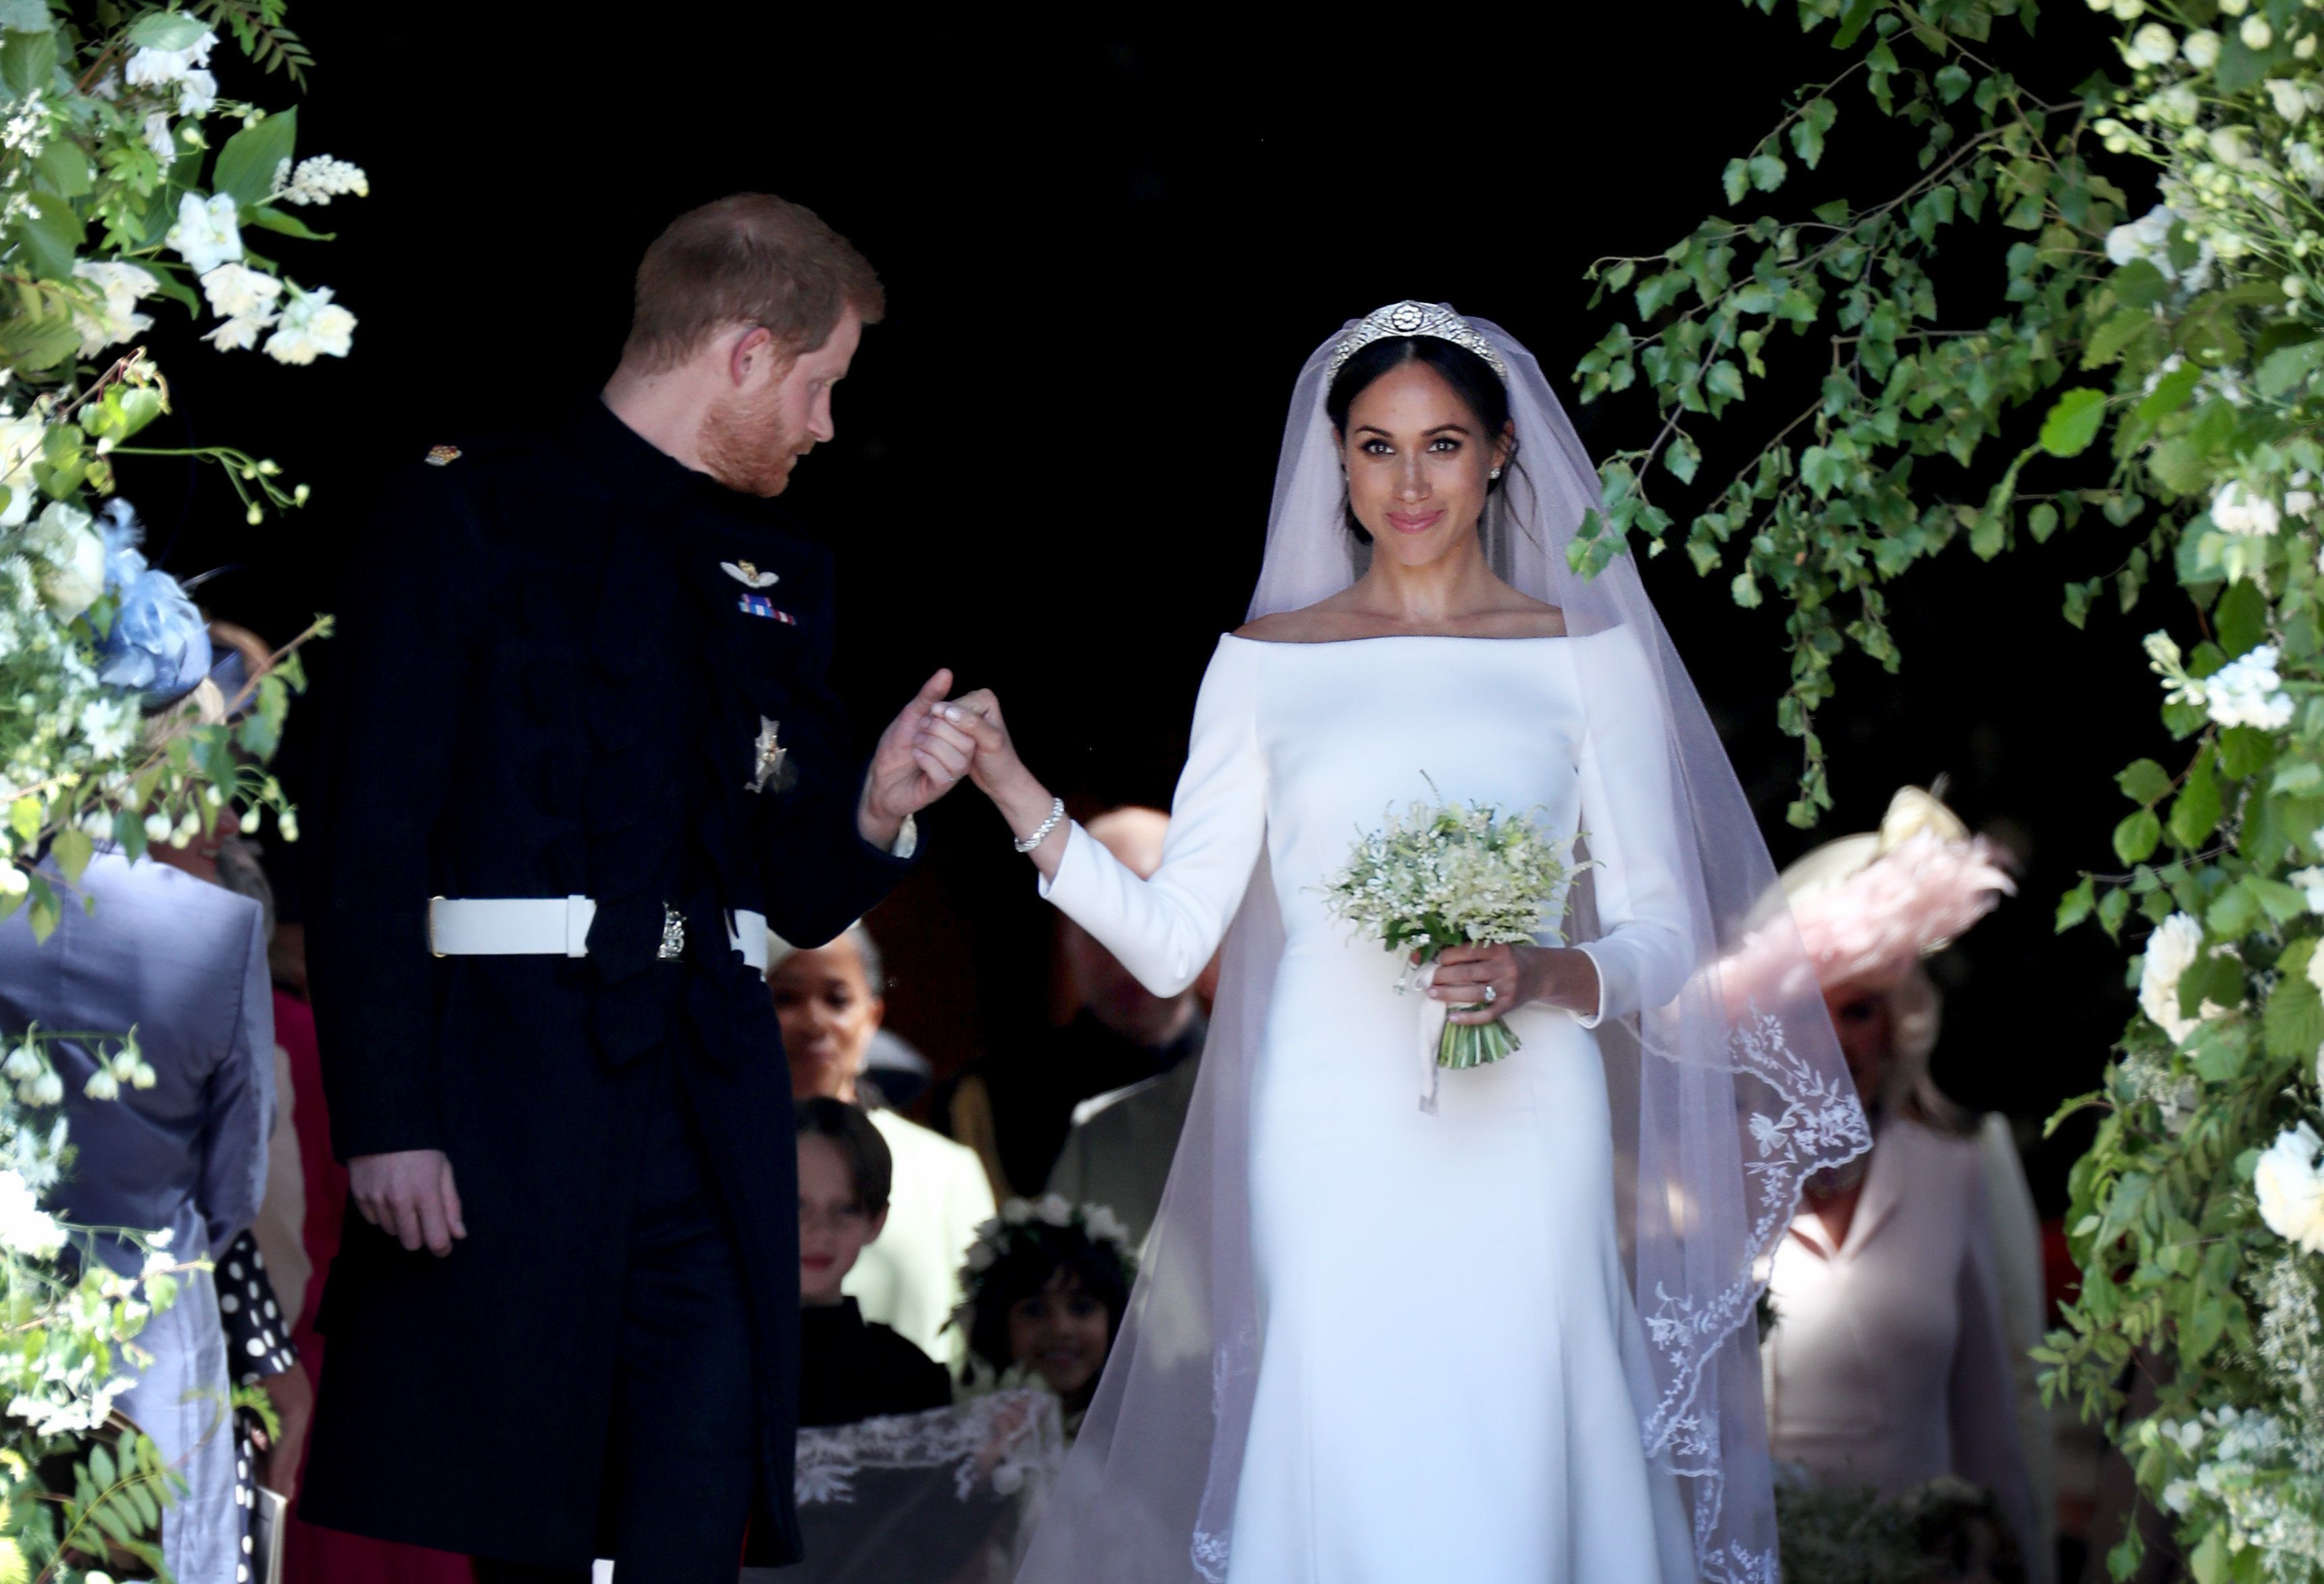 The Duke and Duchess of Sussex on their big day. Embroiderers working on the veil washed their hands every half-hour to keep it spotless before the ceremony.